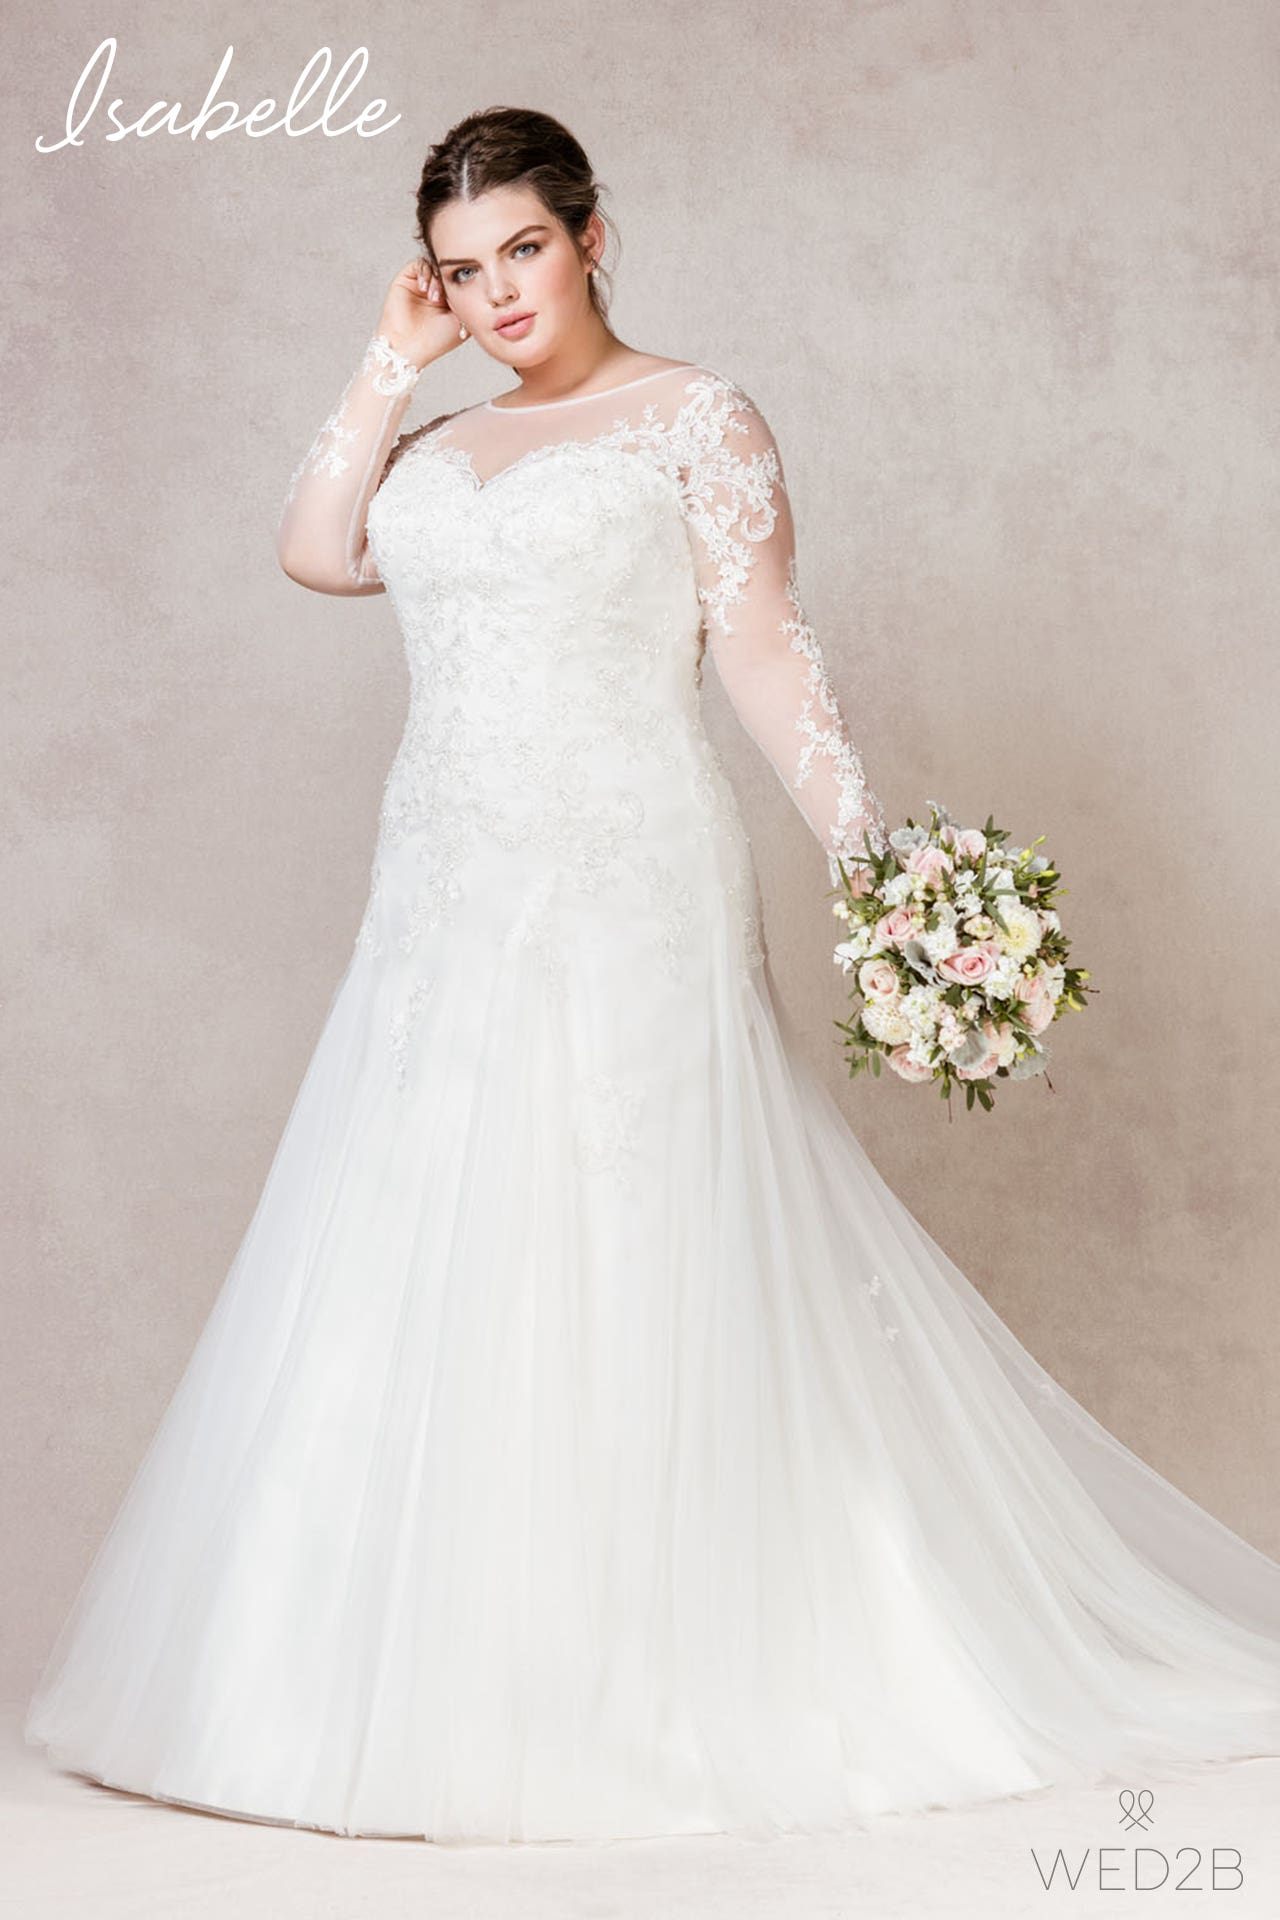 Isabelle plus size wedding dress